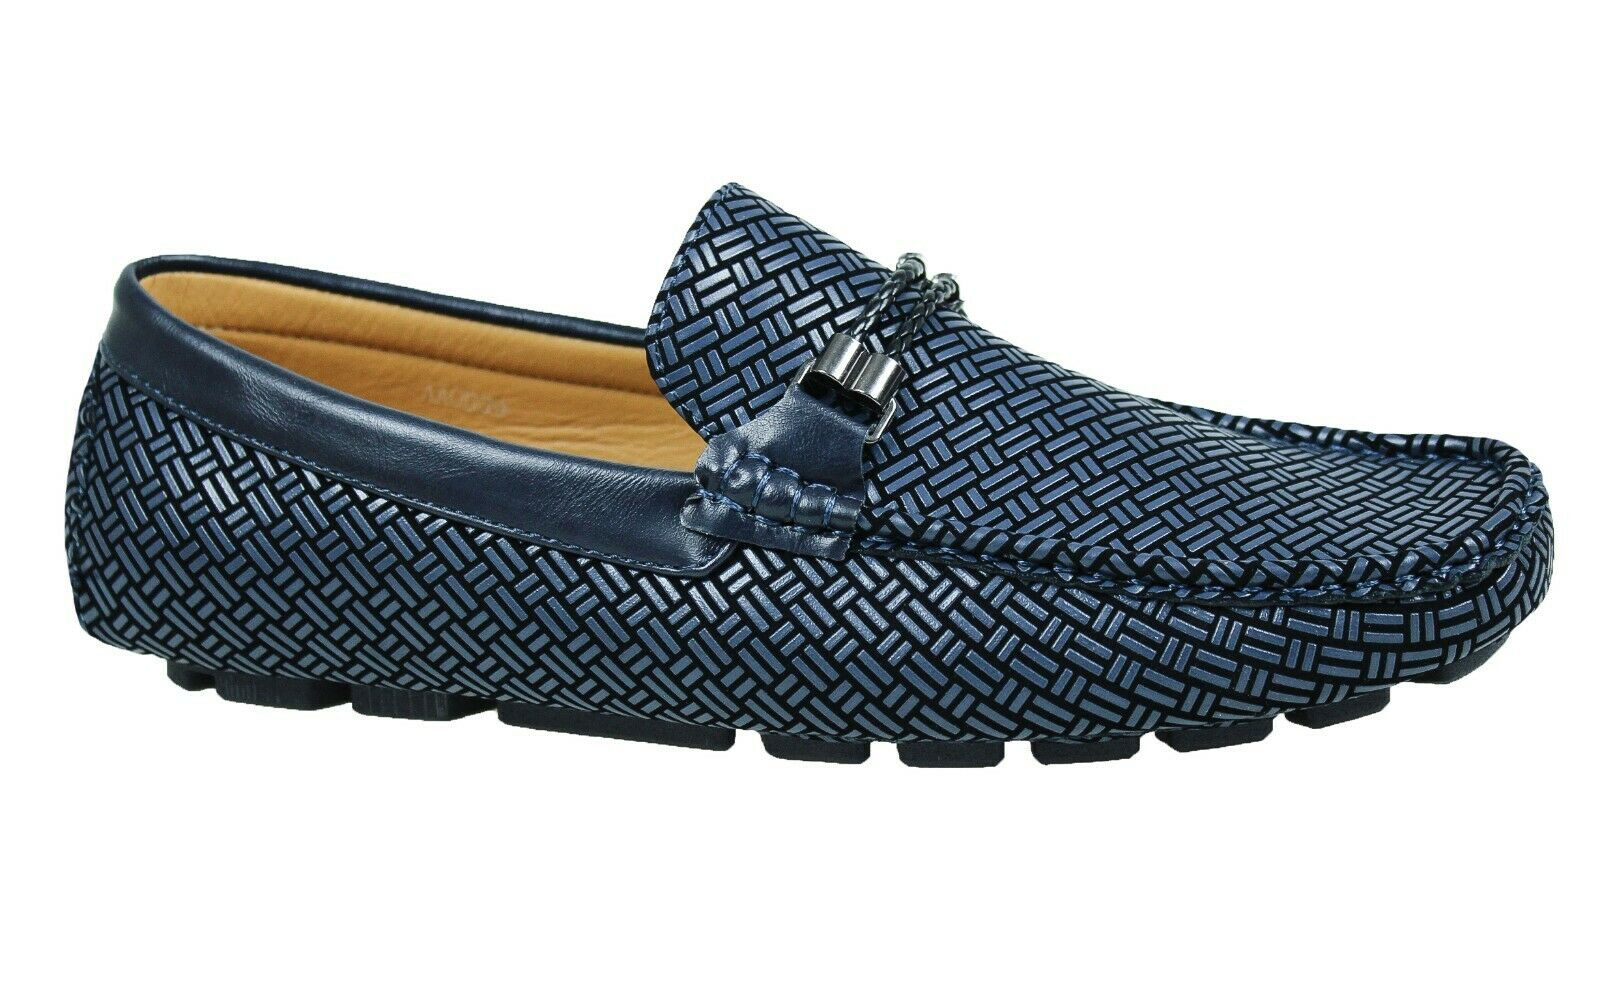 LOAFERS MAN DIAMOND CASUAL ELEGANT blueE SHOES FAUX LEATHER SPRING SUMMER